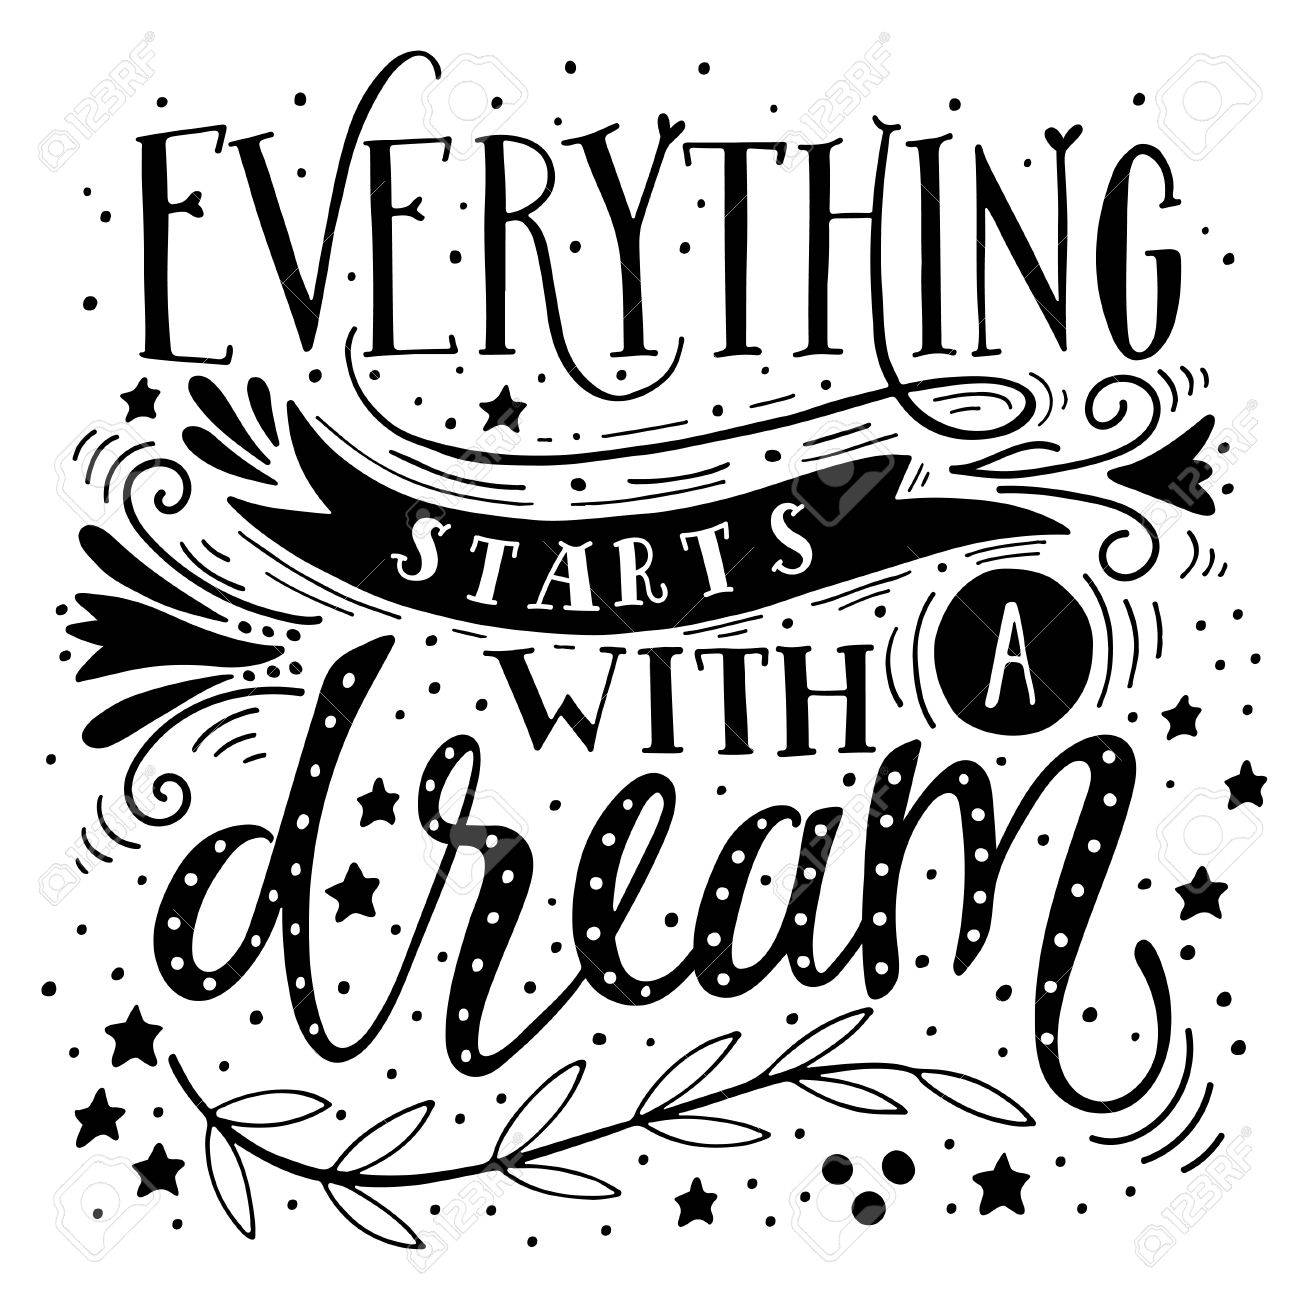 Everything starts with a dream. Inspirational quote. Hand drawn vintage illustration with hand-lettering. This illustration can be used as a print on t-shirts and bags, stationary or as a poster. - 51527145